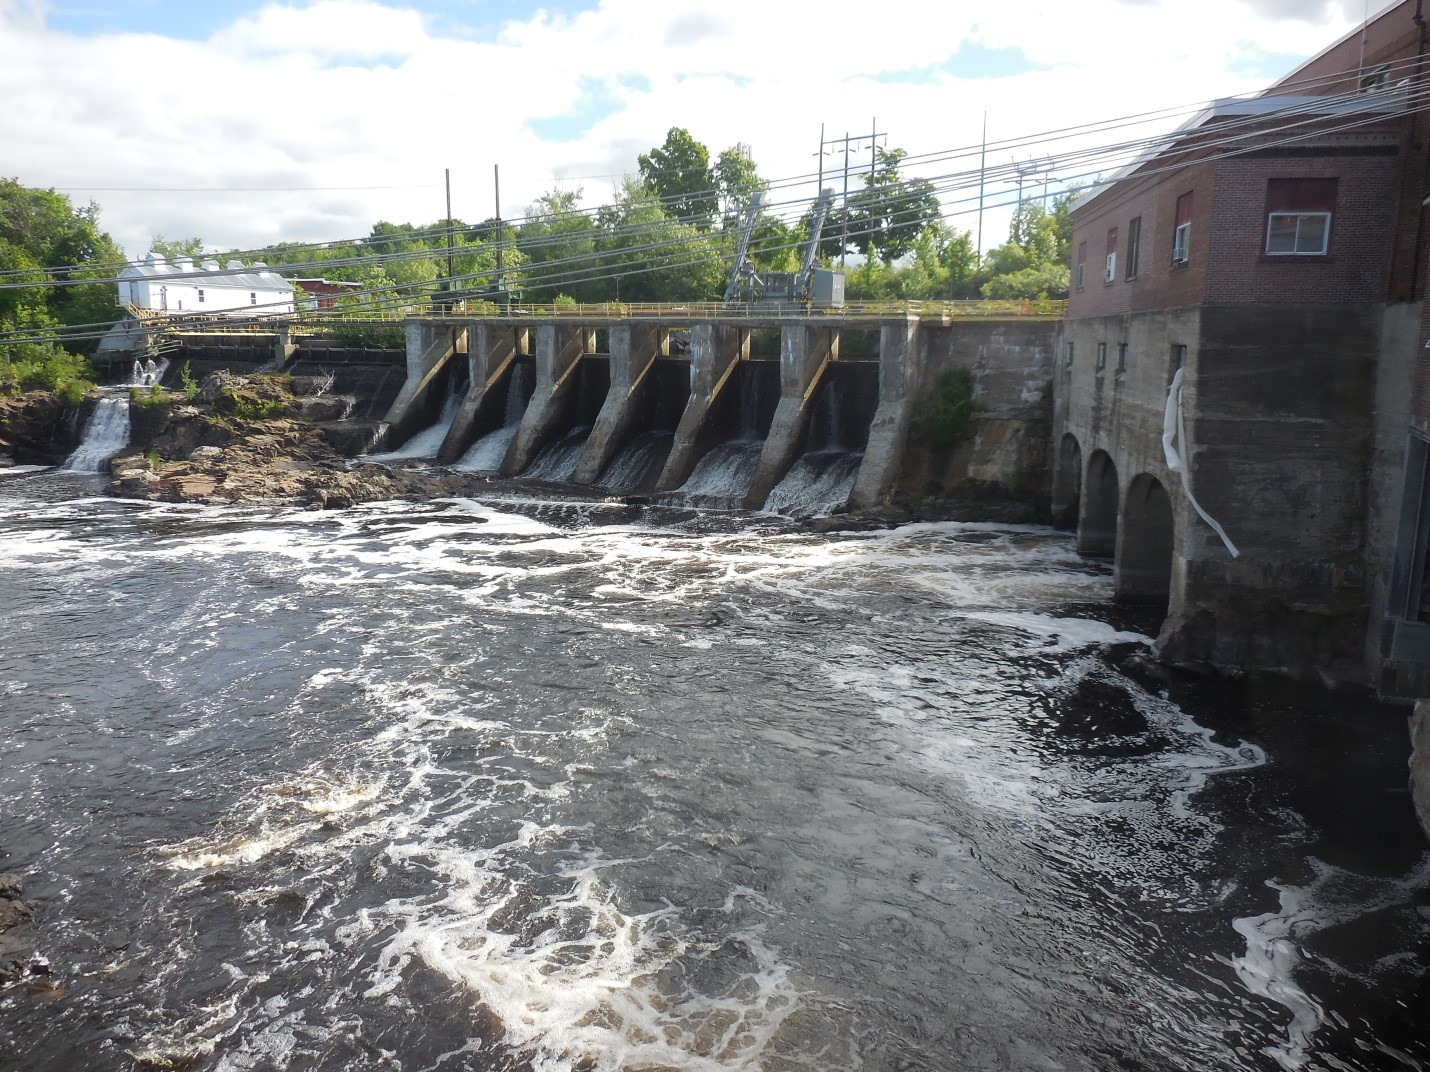 The Milltown Dam. Credit: Shannon E. Runyon